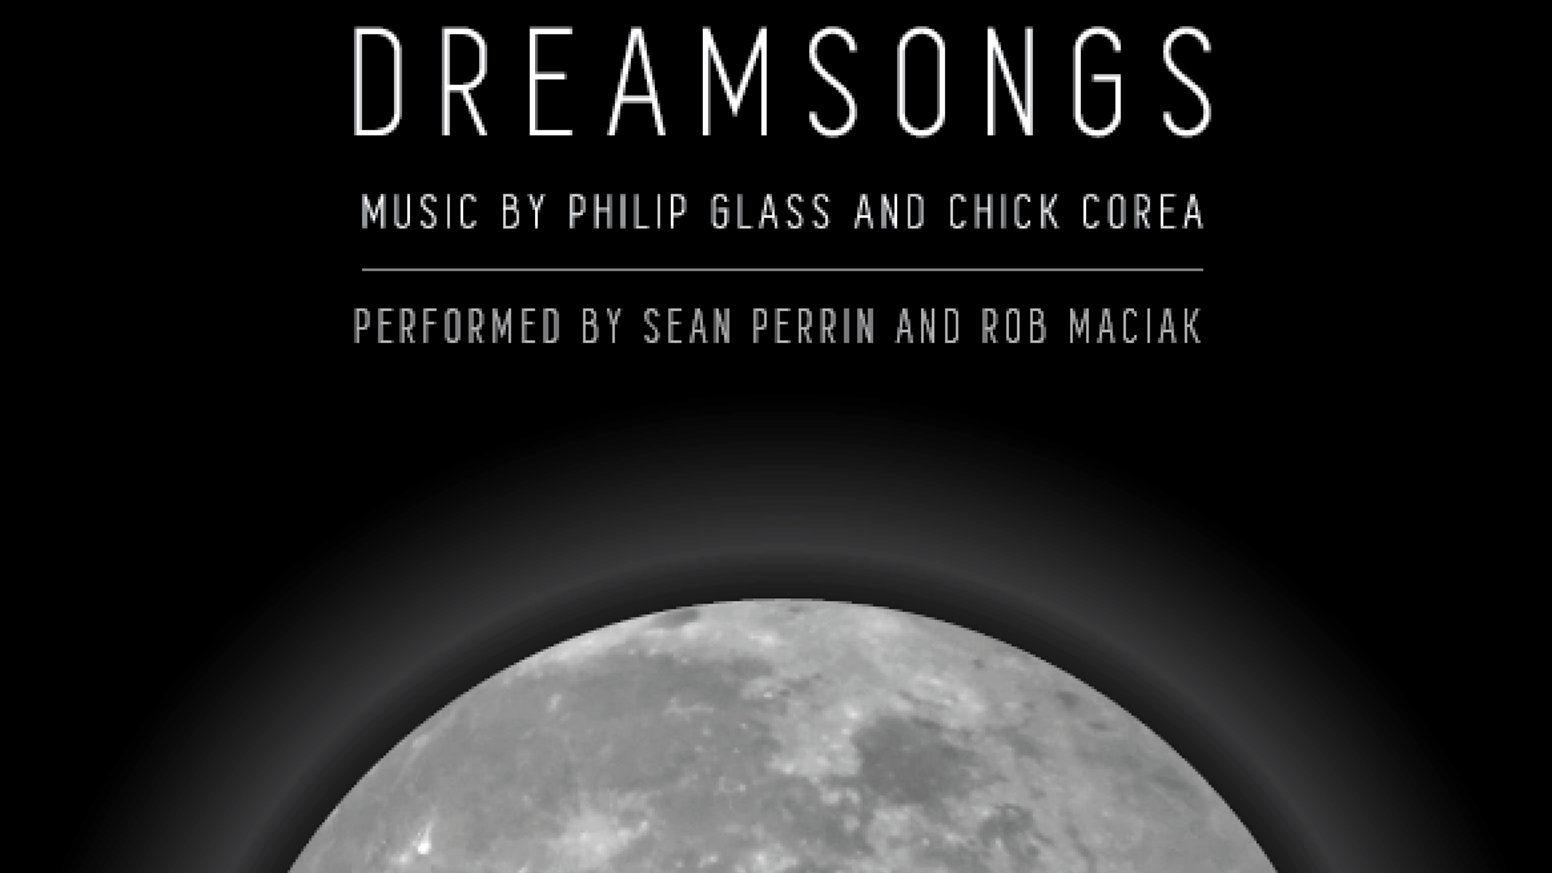 """Dreamsongs"" is an album that features the music of Chick Corea and Philip Glass arranged for clarinet and mallet percussion."